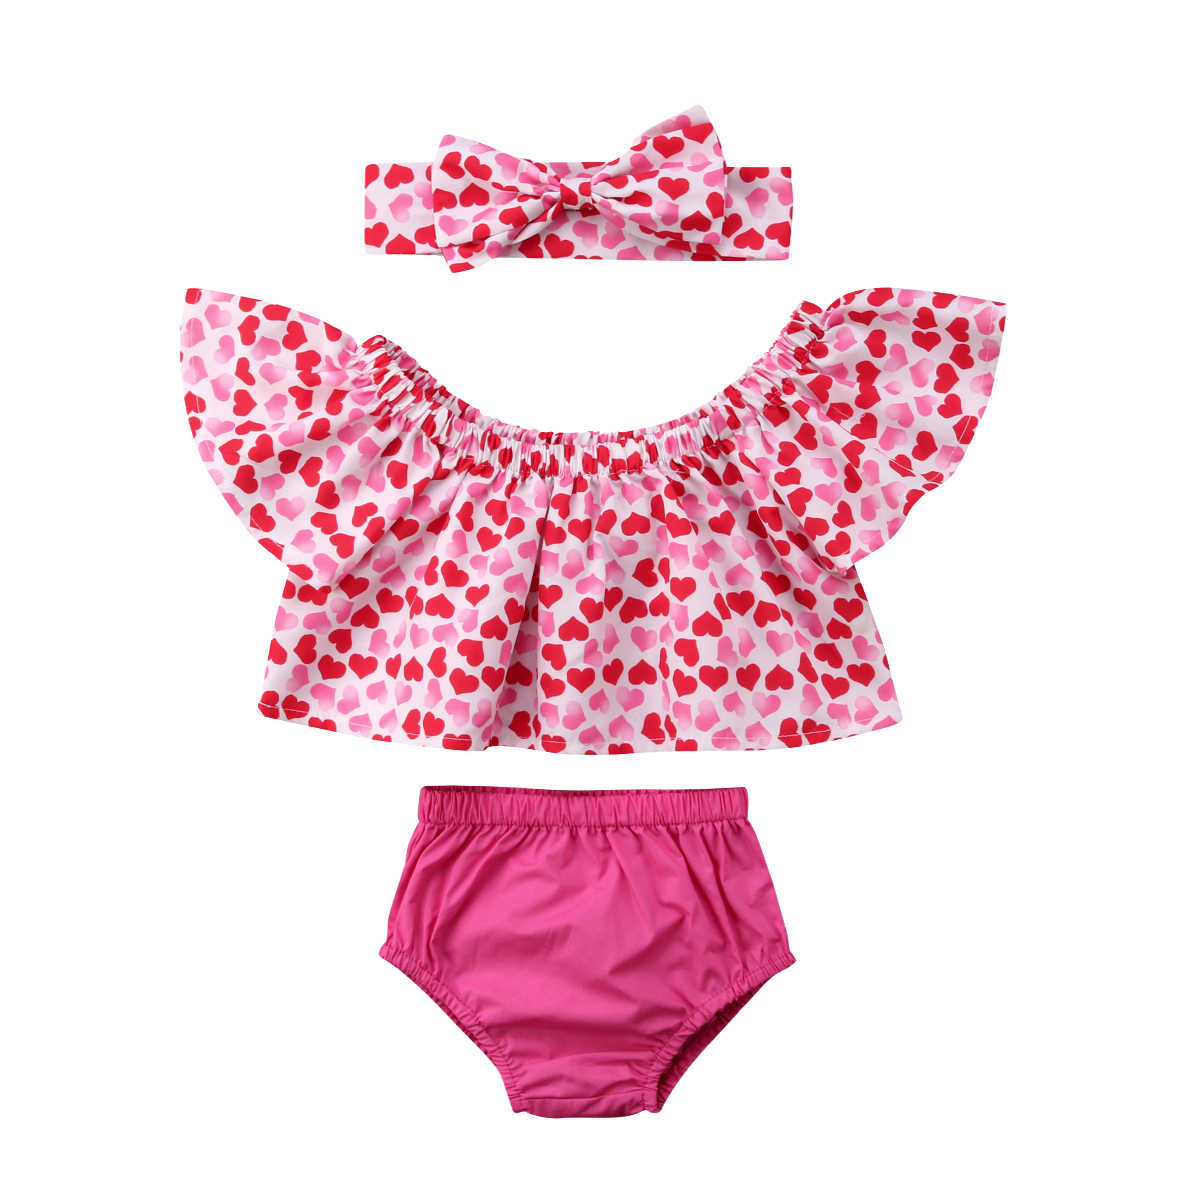 2019 Toddler Newborn Baby Girls Off Shoulder Valentines Day Heart Crop Tops Shorts Headband 3PCS Outfits Cute Clothes 0-24M